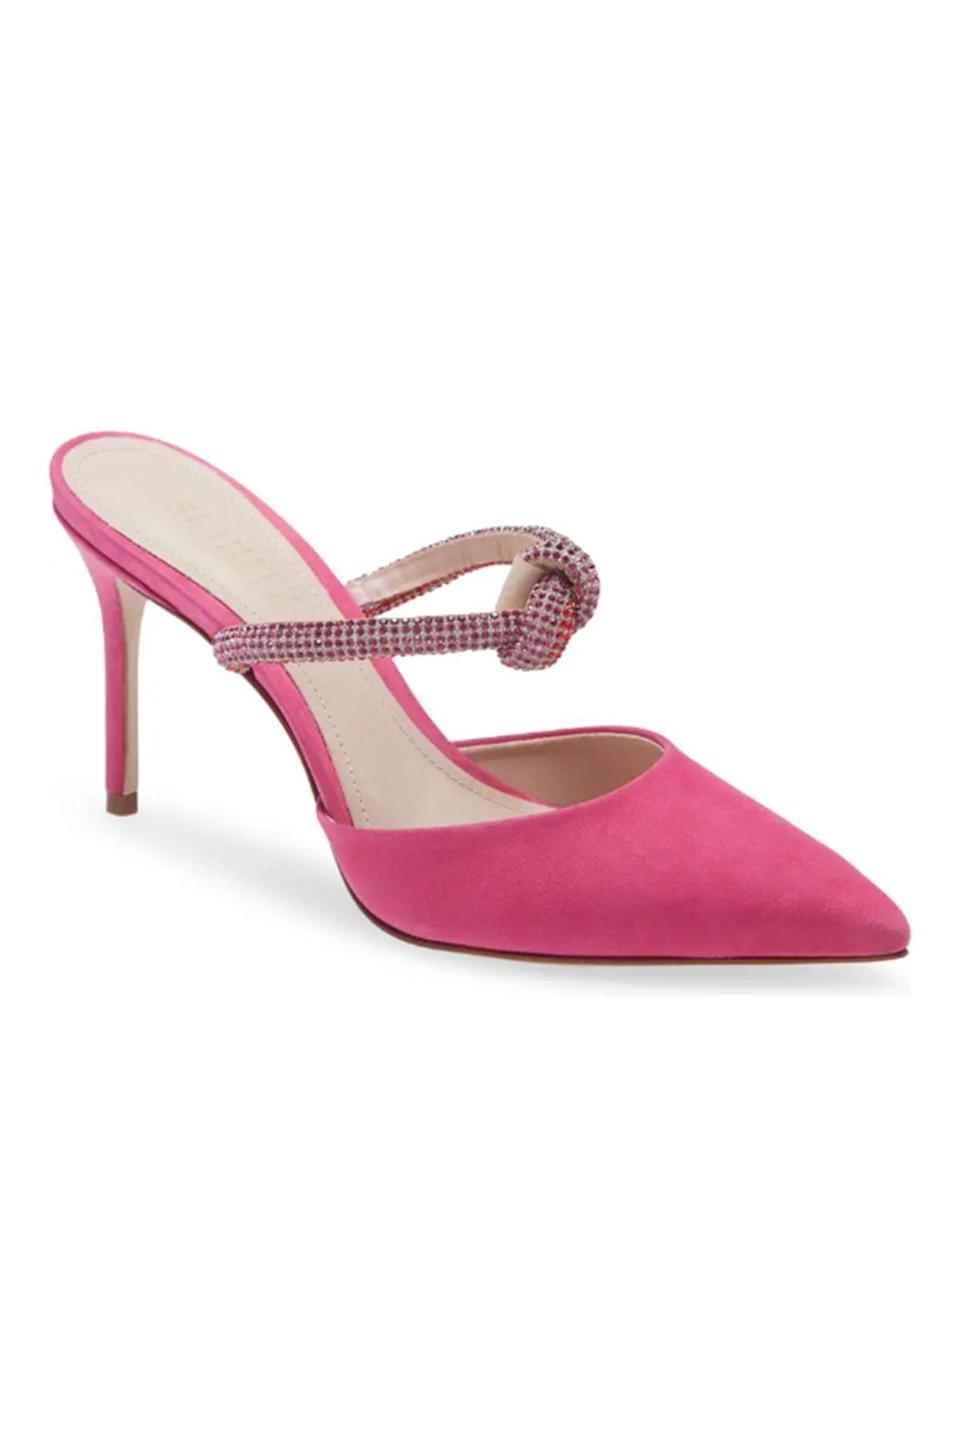 """<p><strong>Schutz</strong></p><p>nordstrom.com</p><p><strong>$128.00</strong></p><p><a href=""""https://go.redirectingat.com?id=74968X1596630&url=https%3A%2F%2Fwww.nordstrom.com%2Fs%2Fschutz-pearl-pointed-toe-mule-women%2F5882881&sref=https%3A%2F%2Fwww.townandcountrymag.com%2Fstyle%2Ffashion-trends%2Fg36474527%2Fstatement-heels%2F"""" rel=""""nofollow noopener"""" target=""""_blank"""" data-ylk=""""slk:Shop Now"""" class=""""link rapid-noclick-resp"""">Shop Now</a></p><p>A shimmery knotted strap angled across the arch is supremely flattering when you want to show a lotta leg. </p>"""